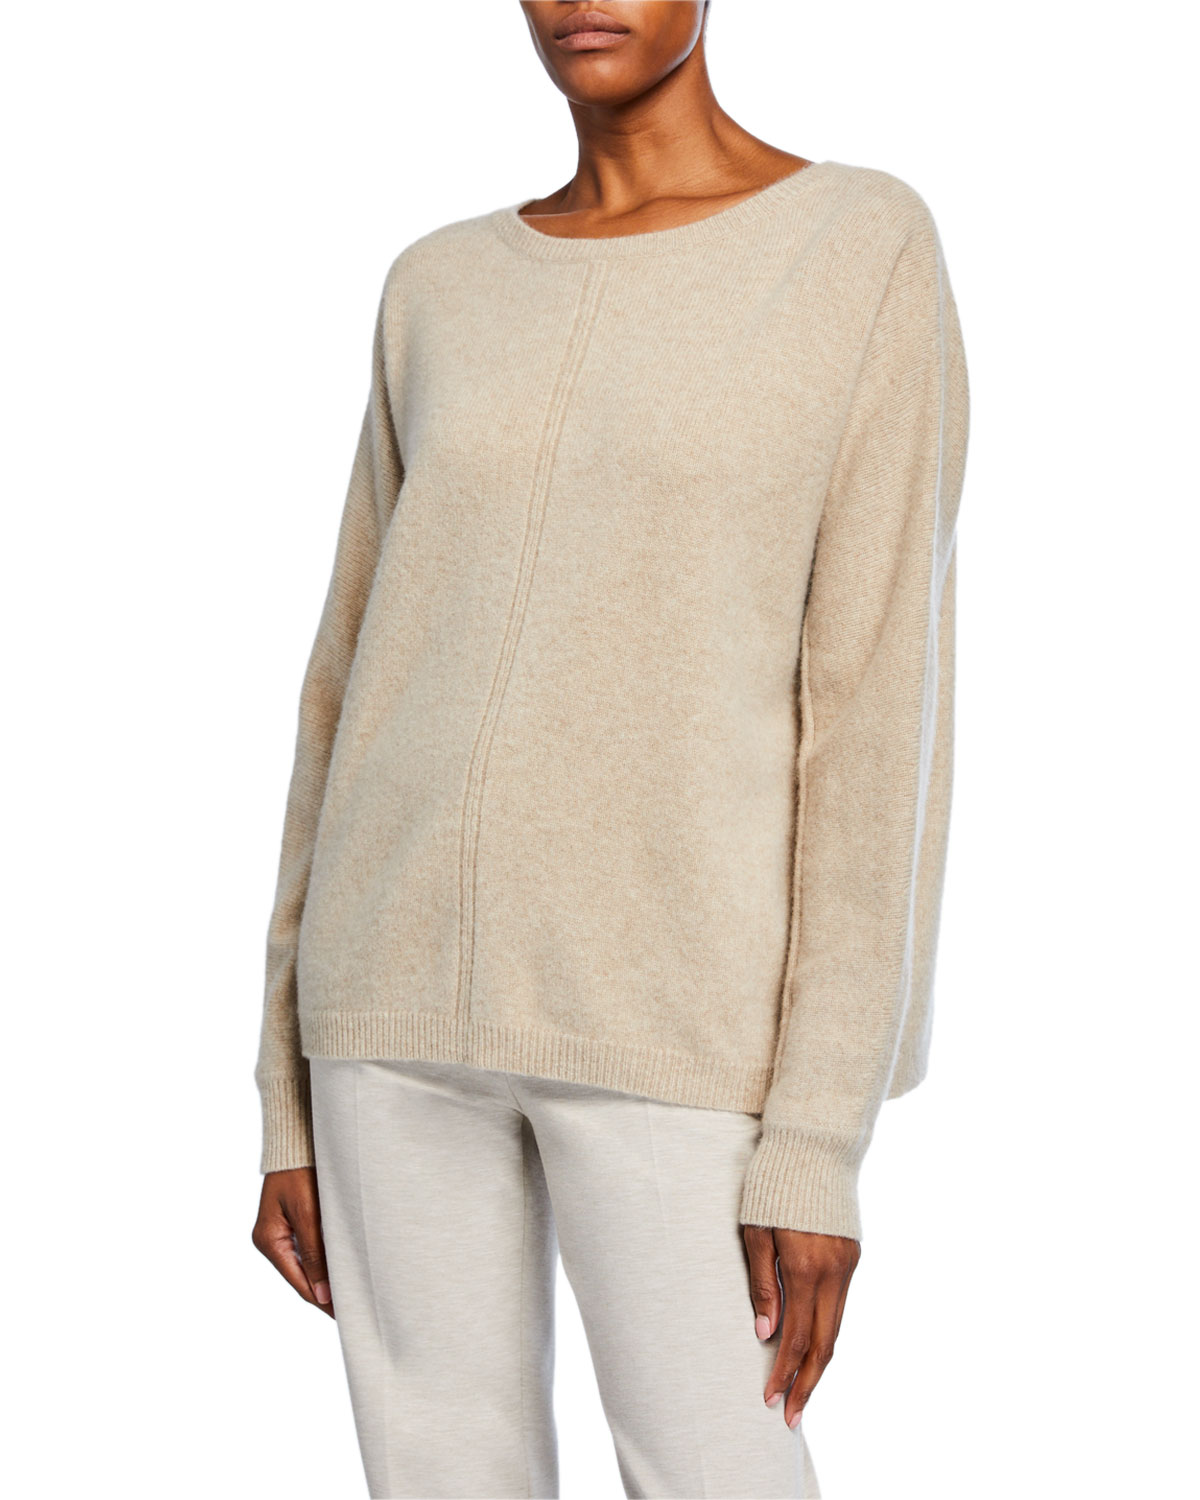 Max Mara Sweaters MASQUE CASHMERE SWEATER